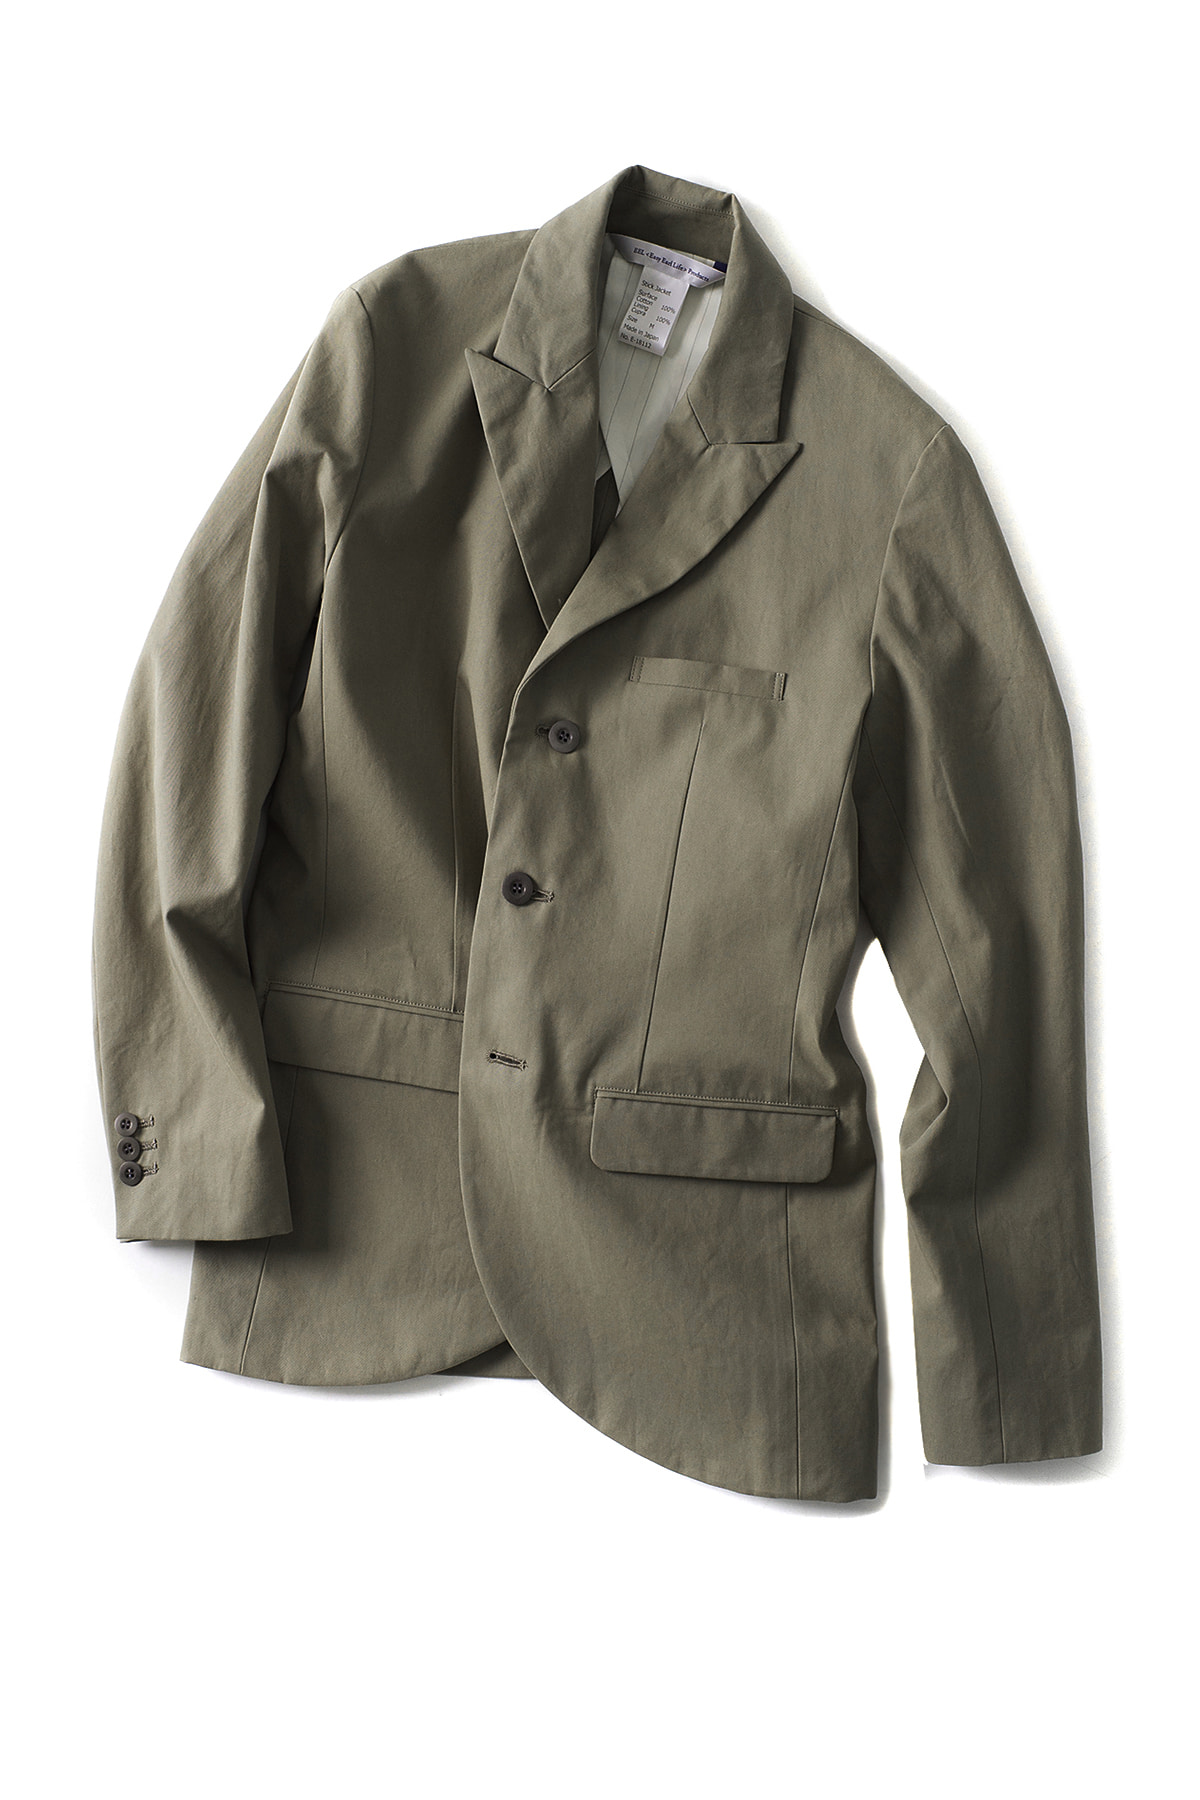 EEL : Stick Jacket (Olive)